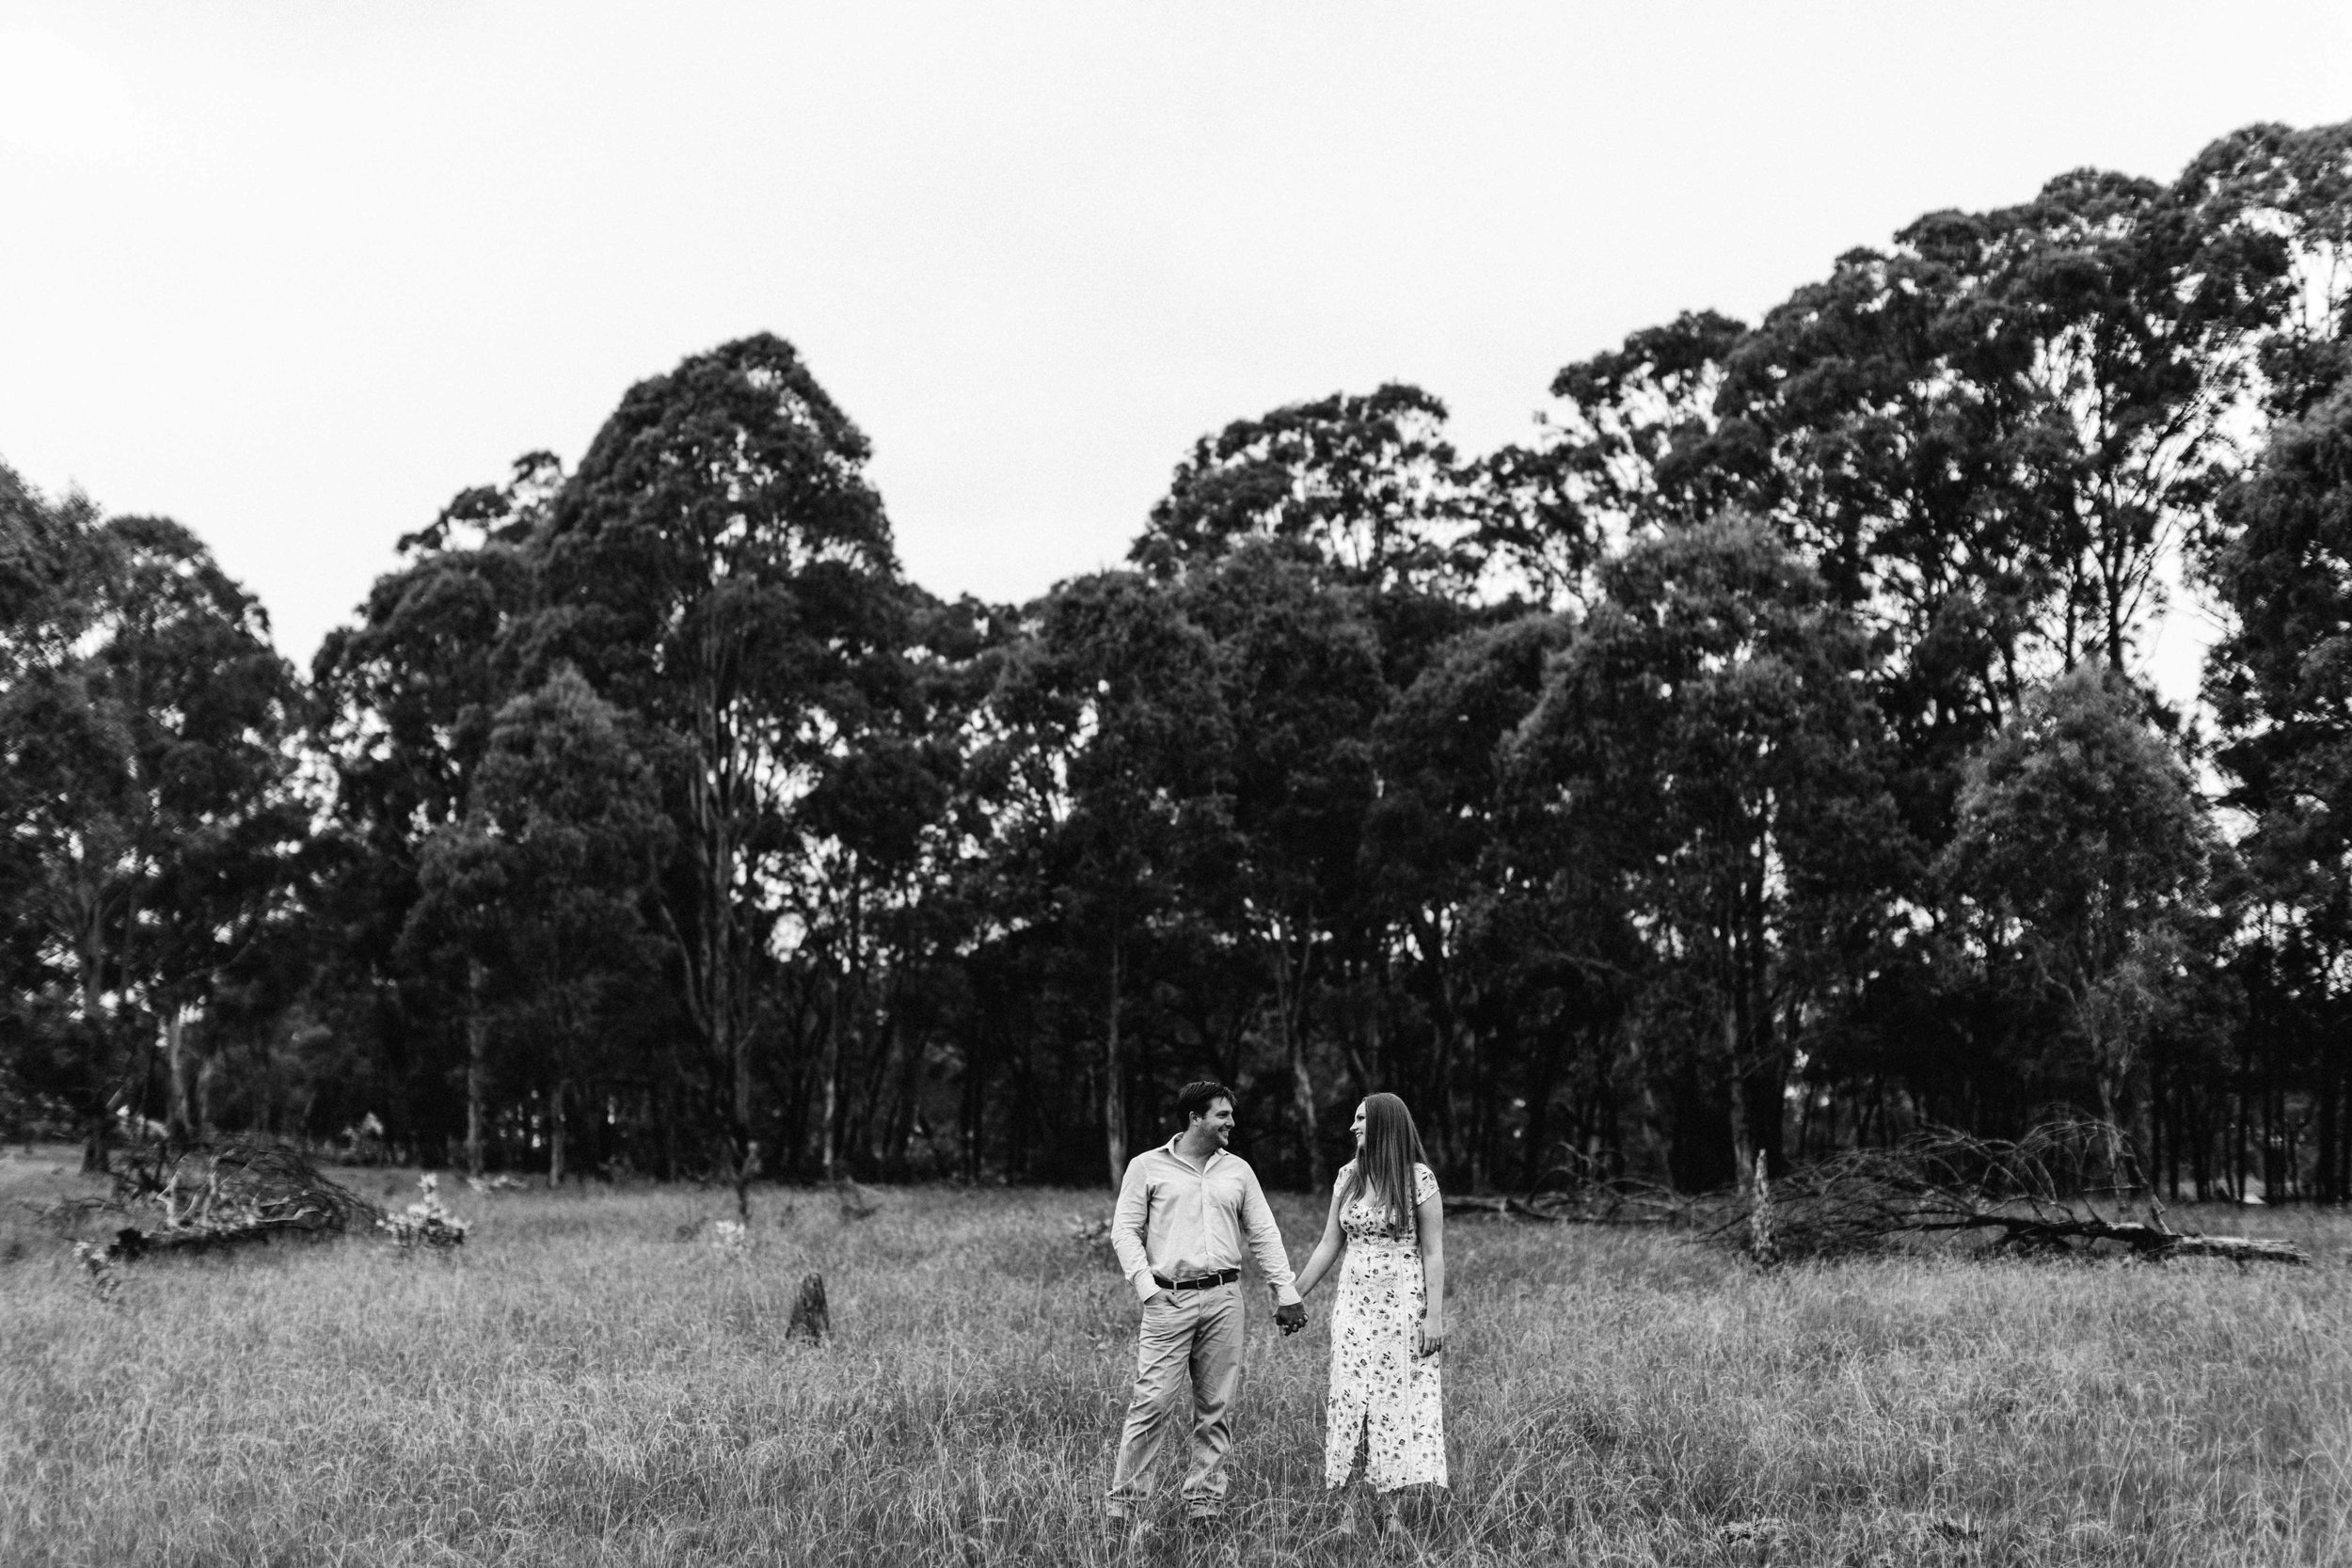 camden-engagement-session-wollondilly-photography-nadine-bernard-7.jpg